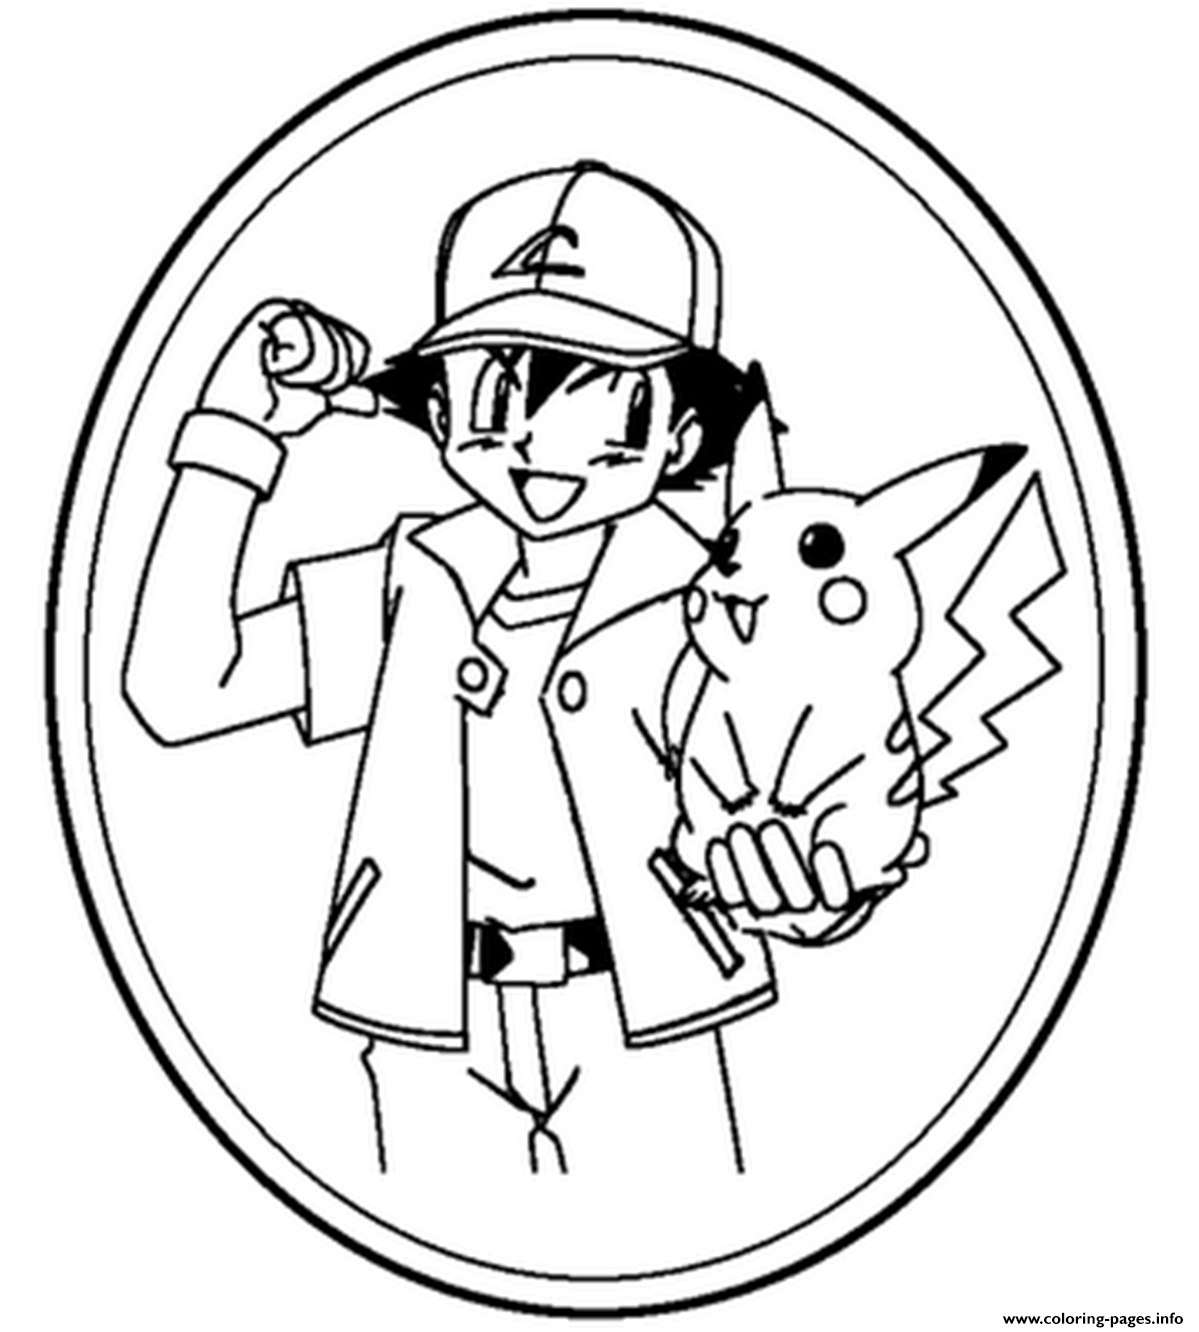 Ash And Pikachu S8744 coloring pages